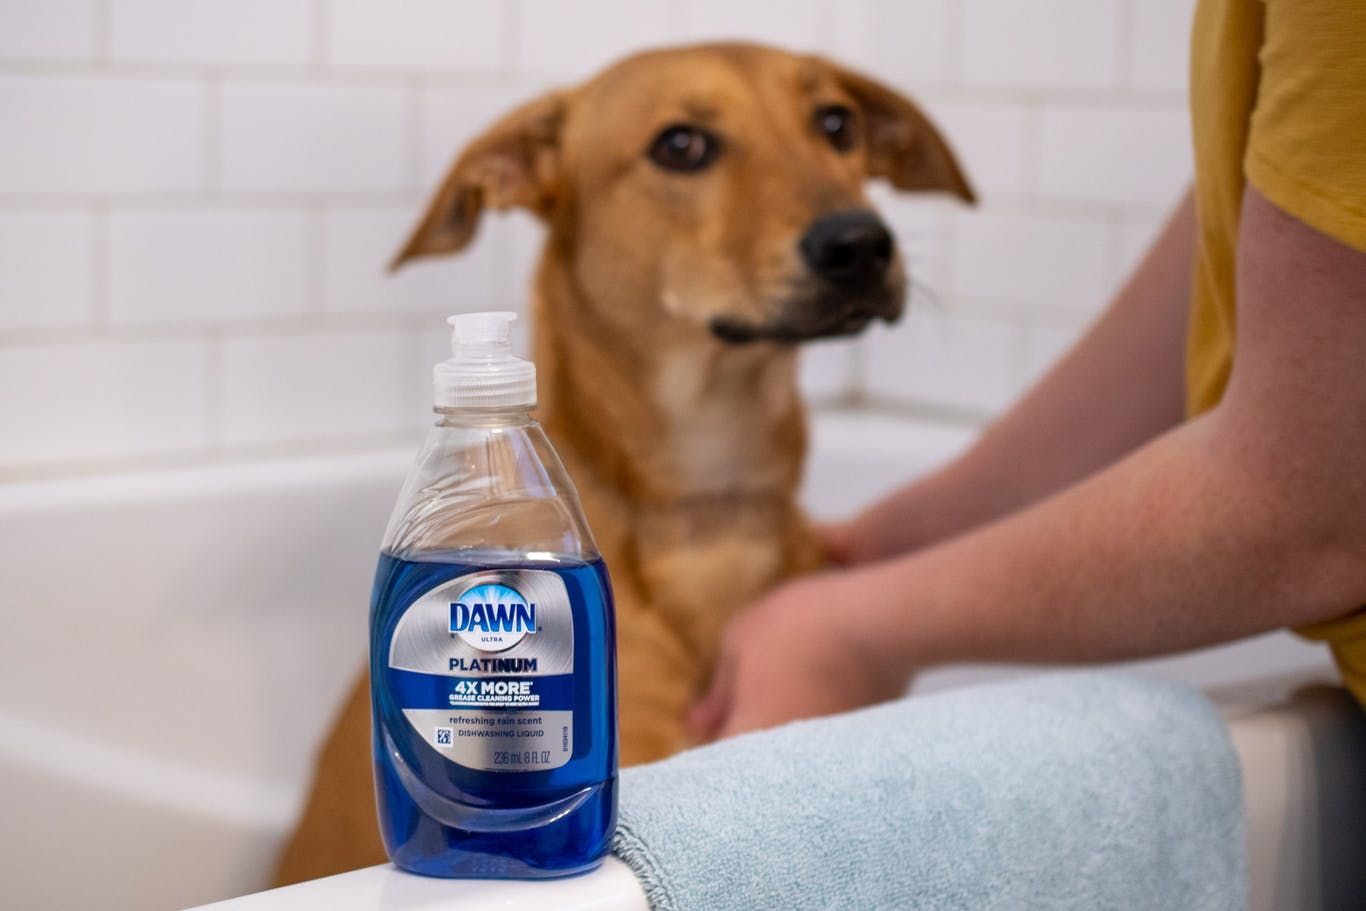 Pin By Ant Harris On Clean House In 2020 Dog Owners Dry Dog Shampoo Diy Dog Shampoo